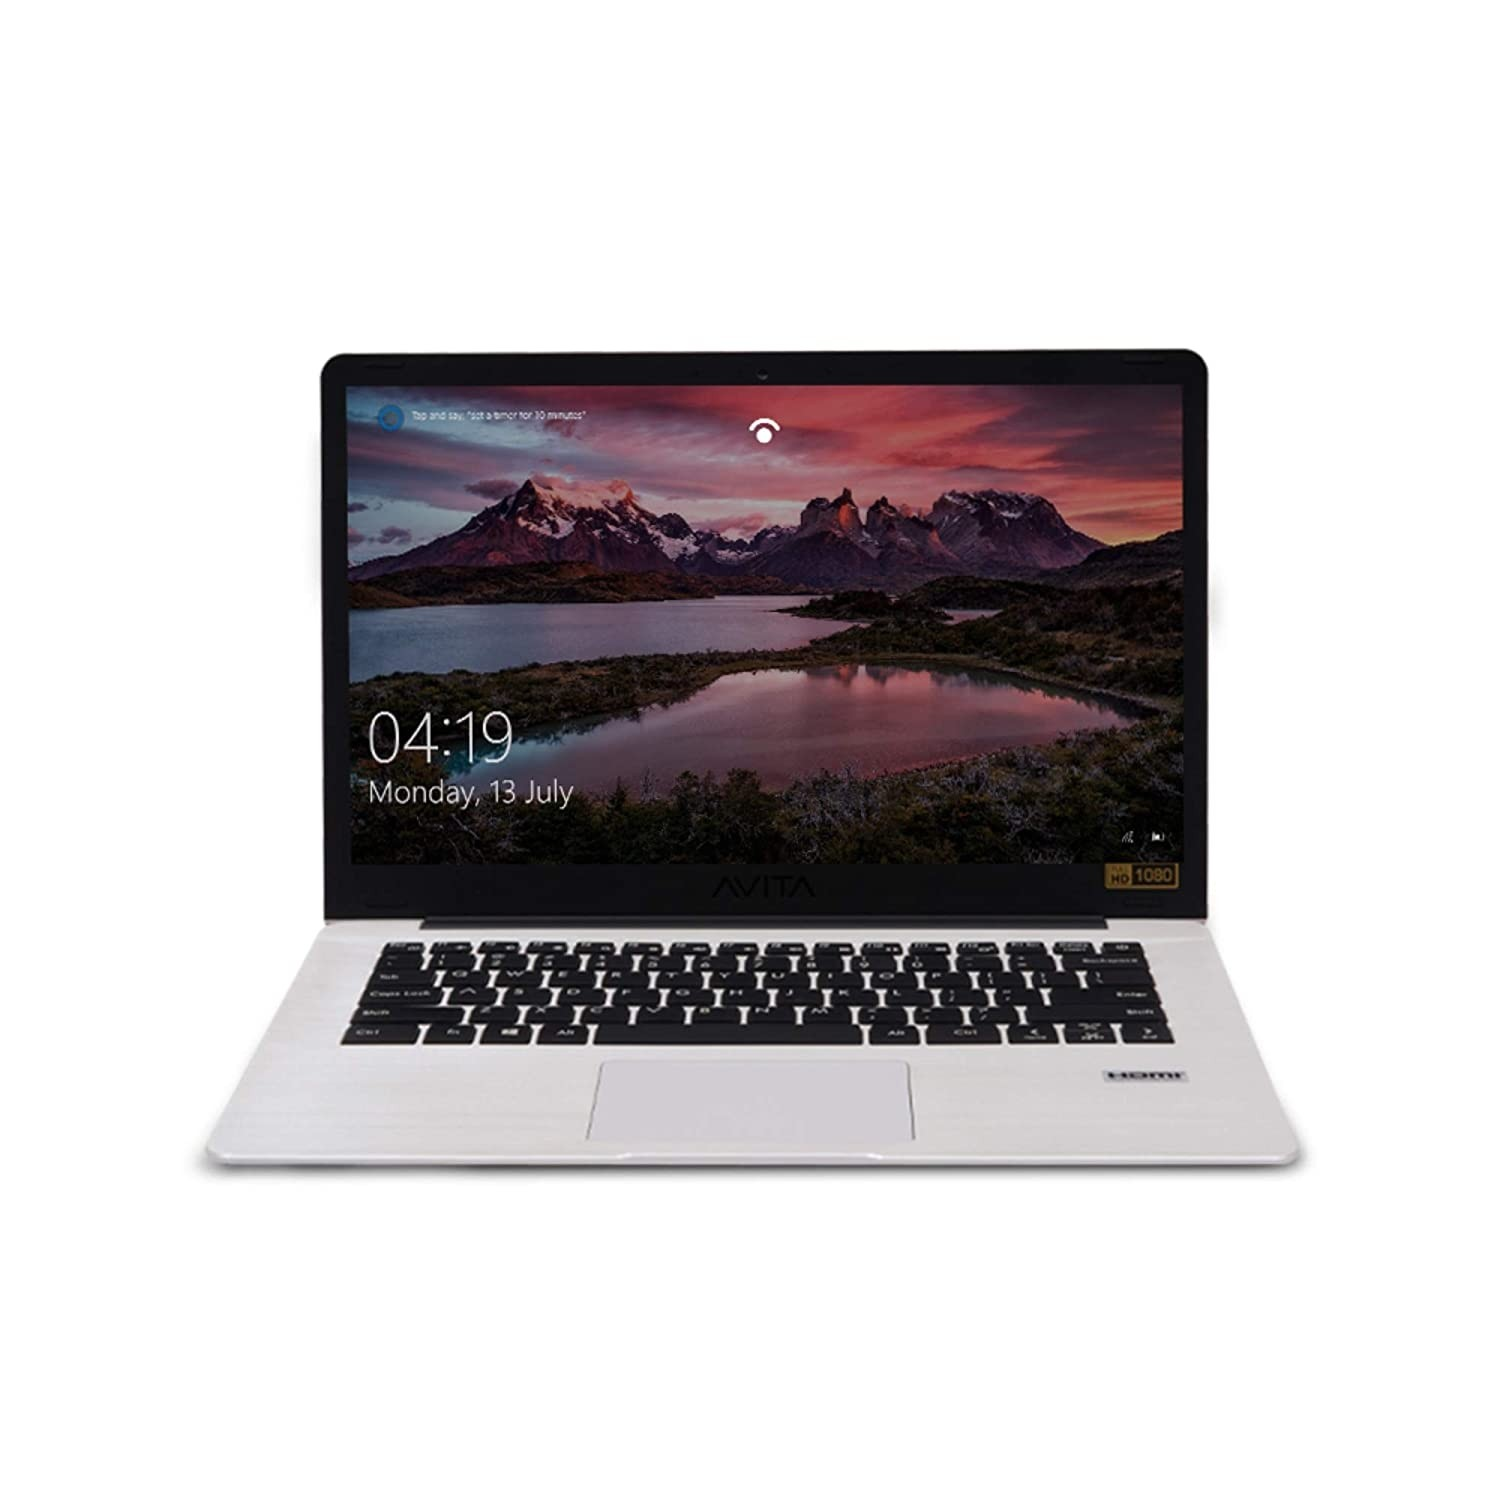 Refurbished laptops & desktops - Avita Pura Ns14A6Inu541-Swgyb 14-Inch Laptop (Amd R3-3200U/8GB/256GB SSD/FHD Display/Windows 10 Home In S Mode/Amd Radeon Vega 3 Graphics/1.34 Kg), Silky White With 3 In 1 Sleeve (Grey)